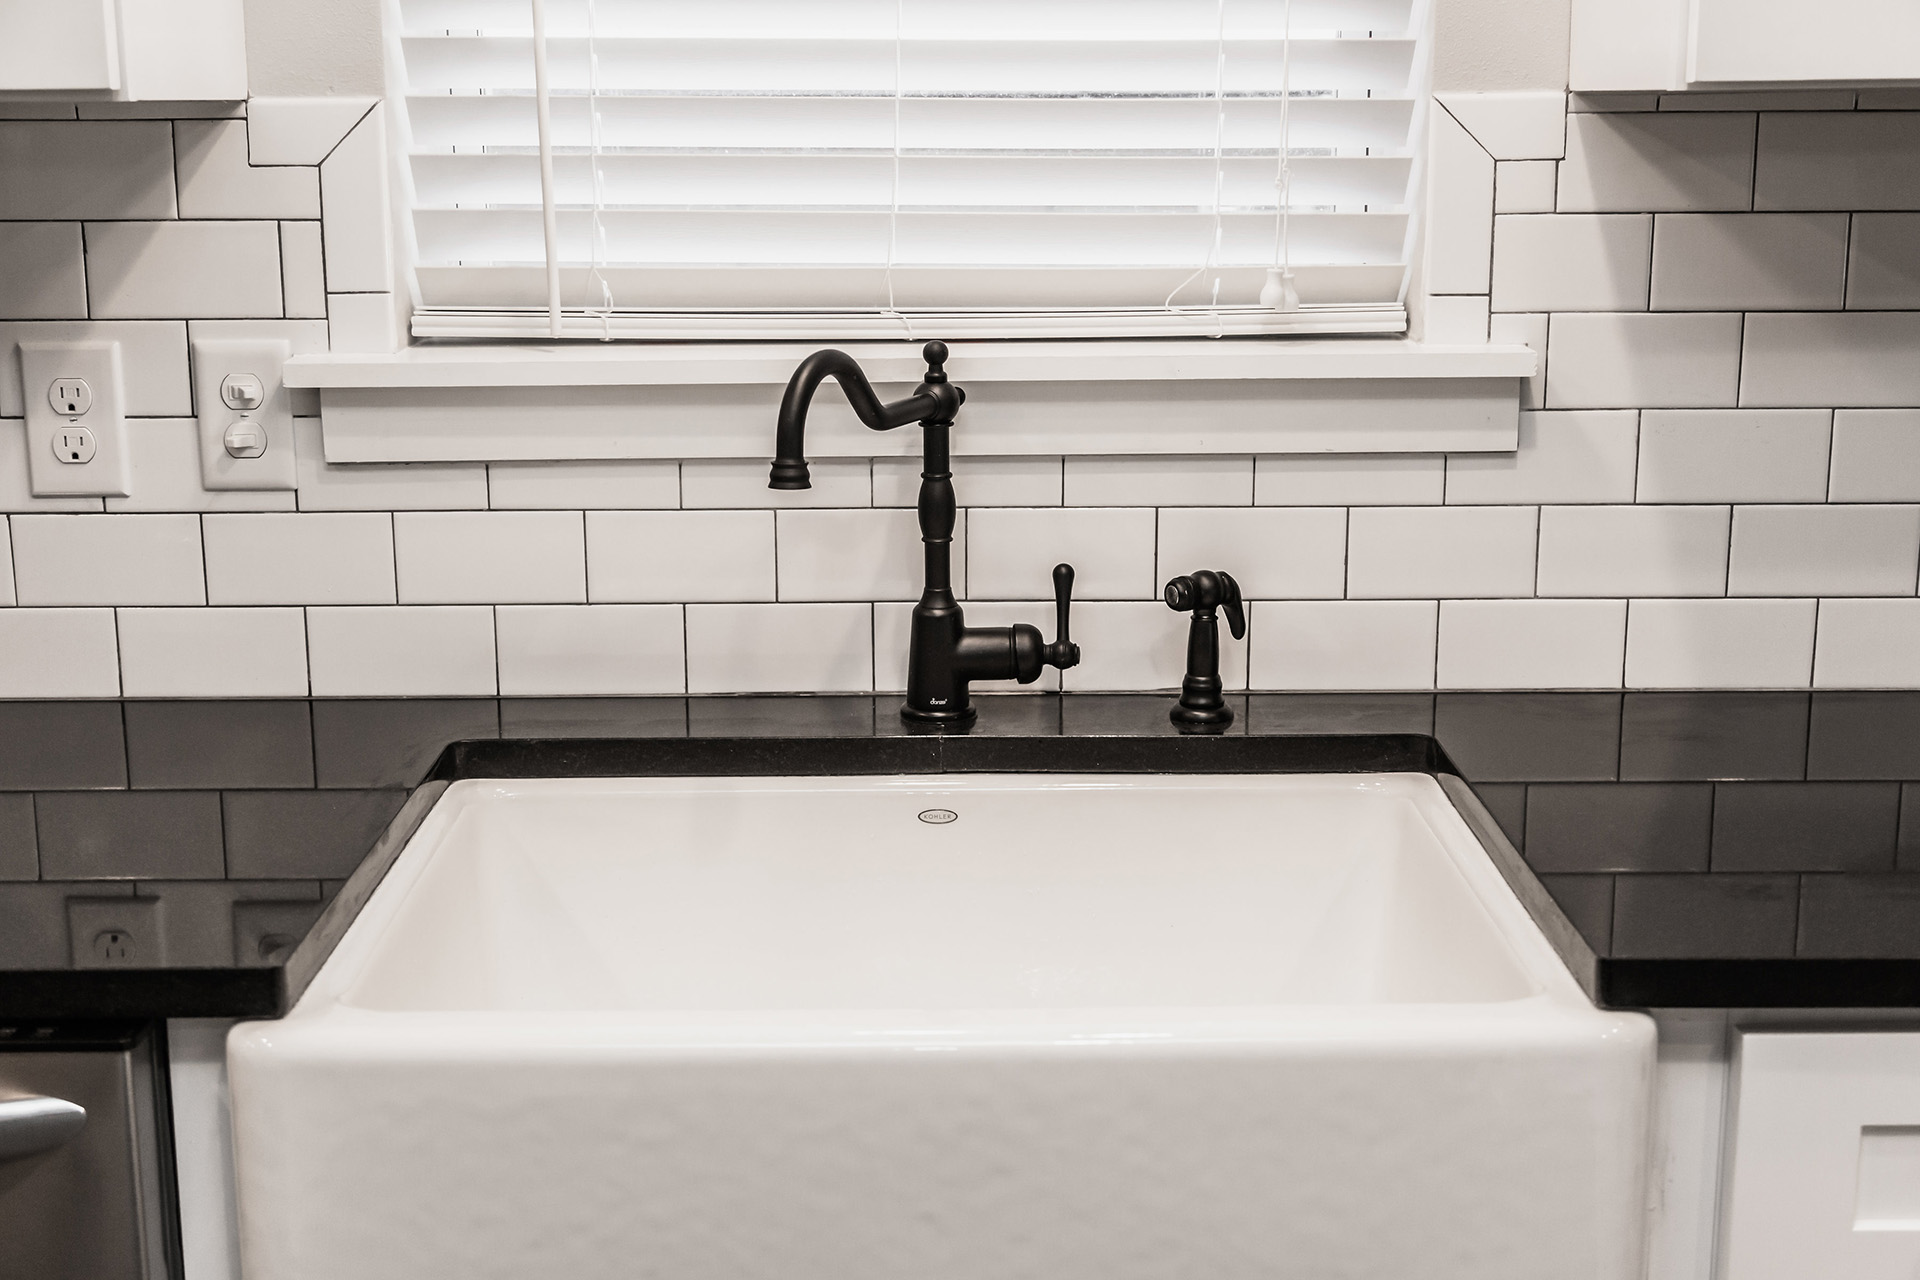 Matte black kitchen faucet, white subway tile backsplash, farmhouse sink, farm sink, apron front kitchen sink, single basin kitchen sink